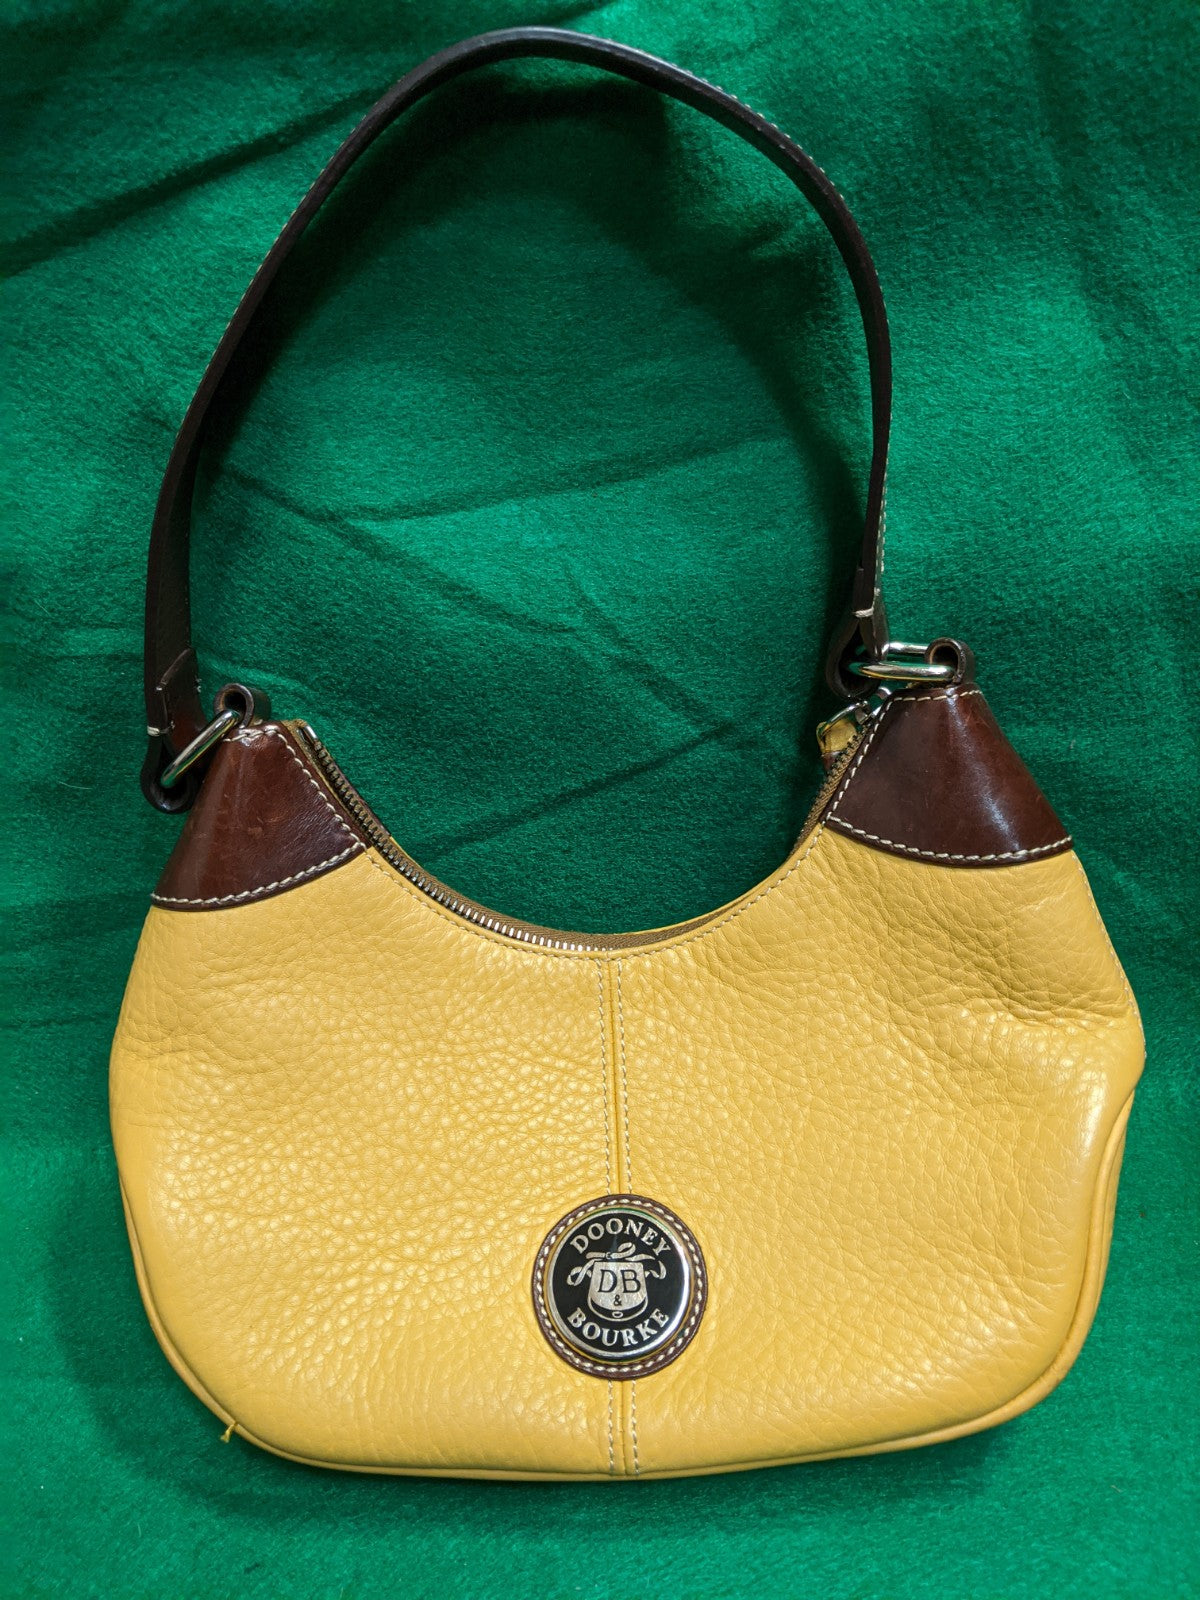 Dooney & Bourke leather handbag